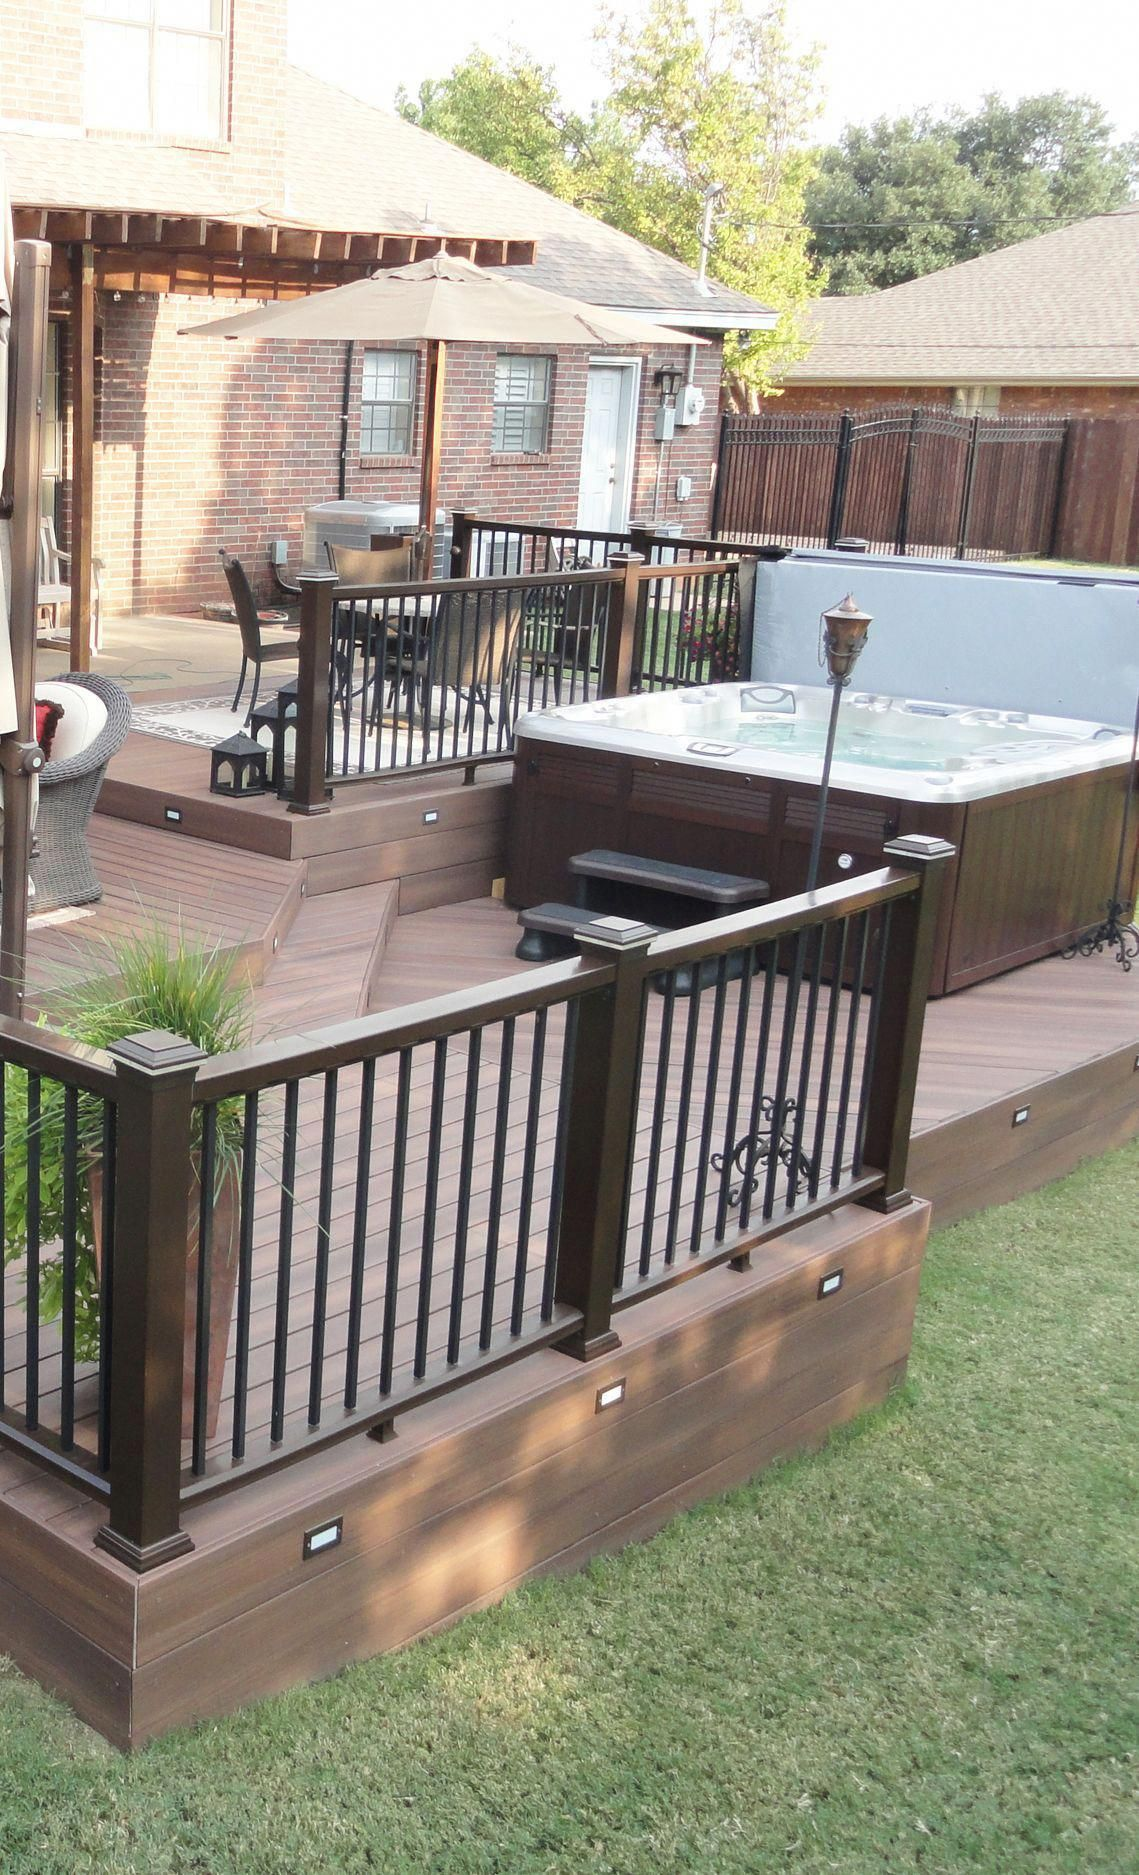 Setting A Realistic Budget Is The First Step To Building Your Outdoor Oasis Our Cost Calculator Will Help Calculate An Deck Deck Building Cost Building A Deck